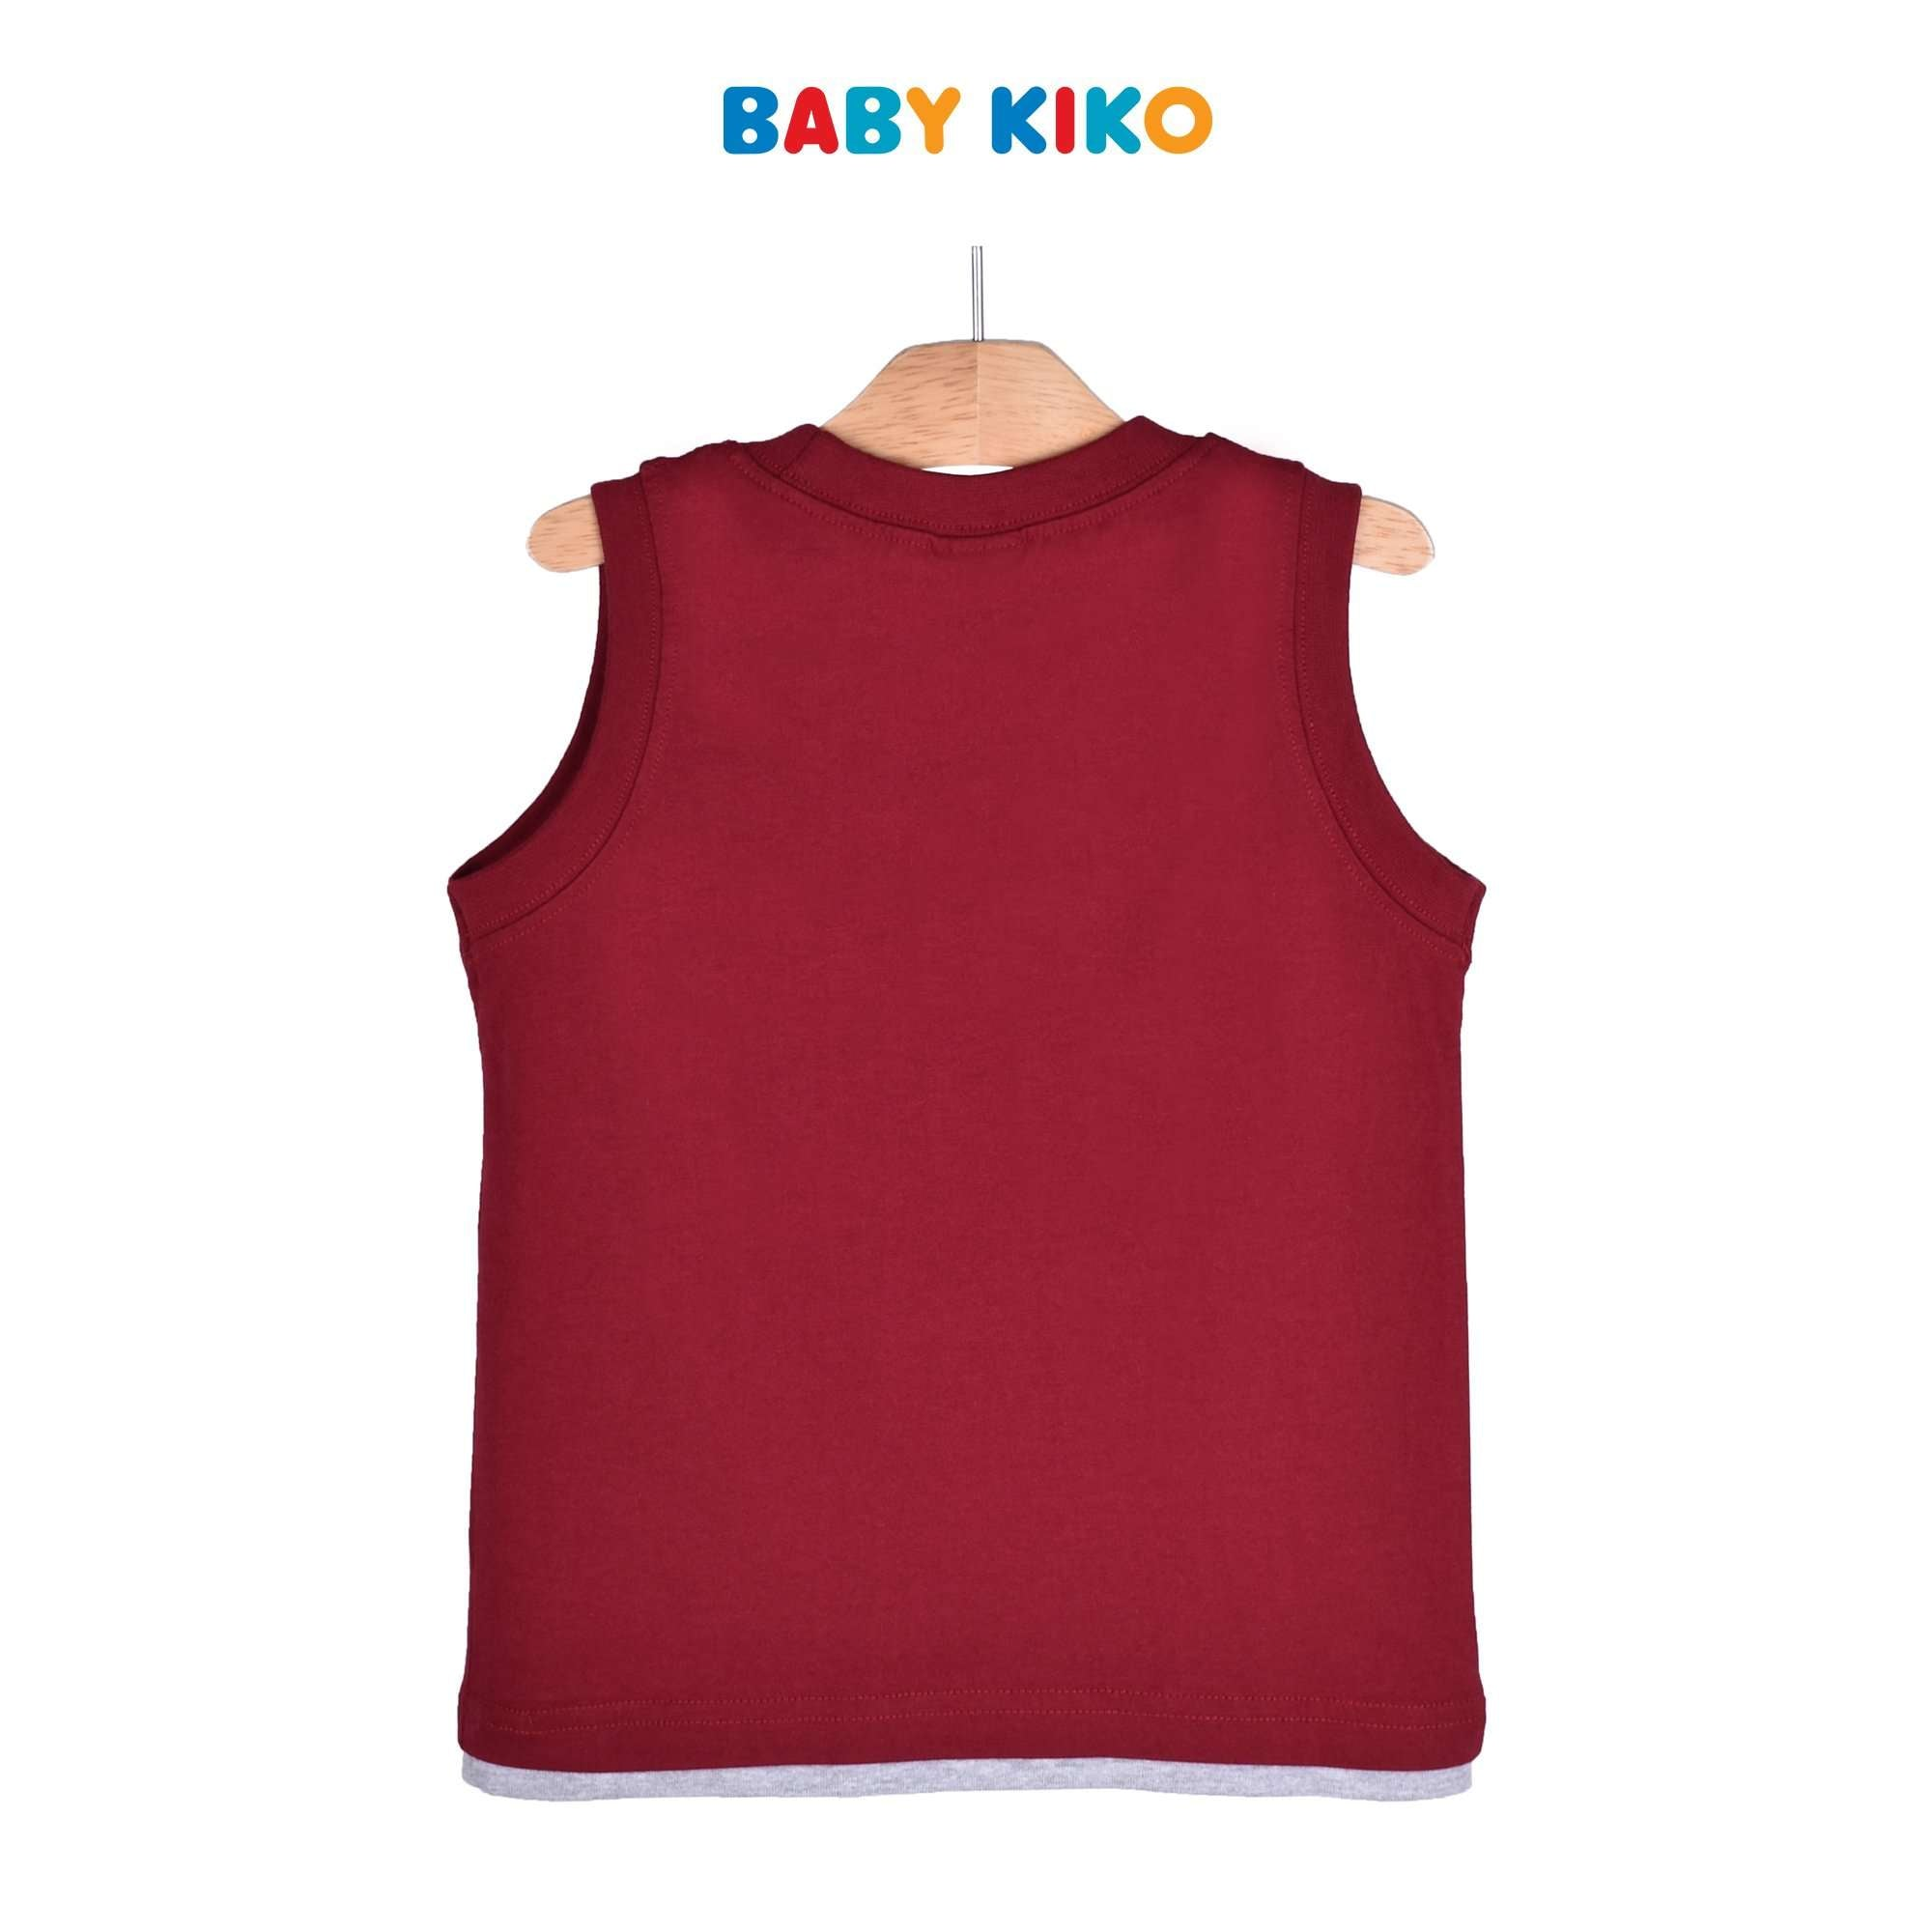 Baby KIKO Toddler Boy Sleeveless Tee Knit 335105-101 : Buy Baby KIKO online at CMG.MY